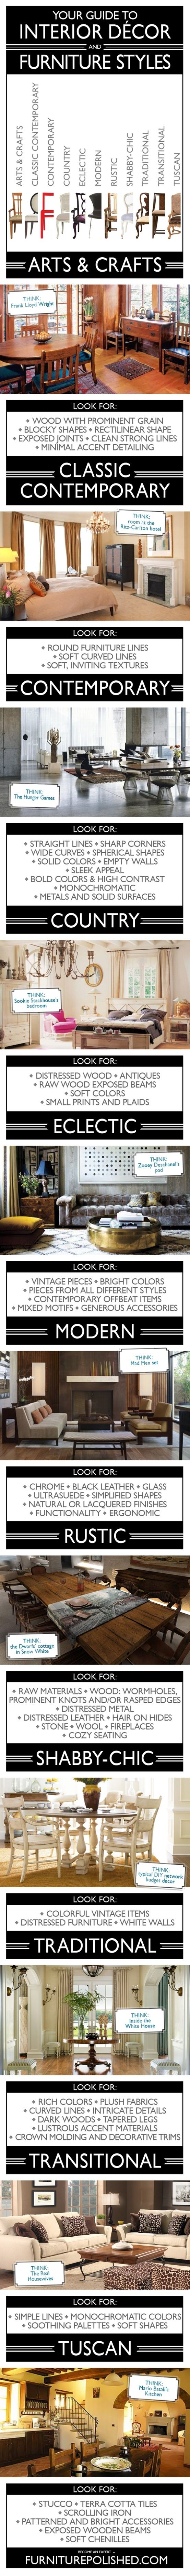 How to understand the difference between various interior design styles effortlessly